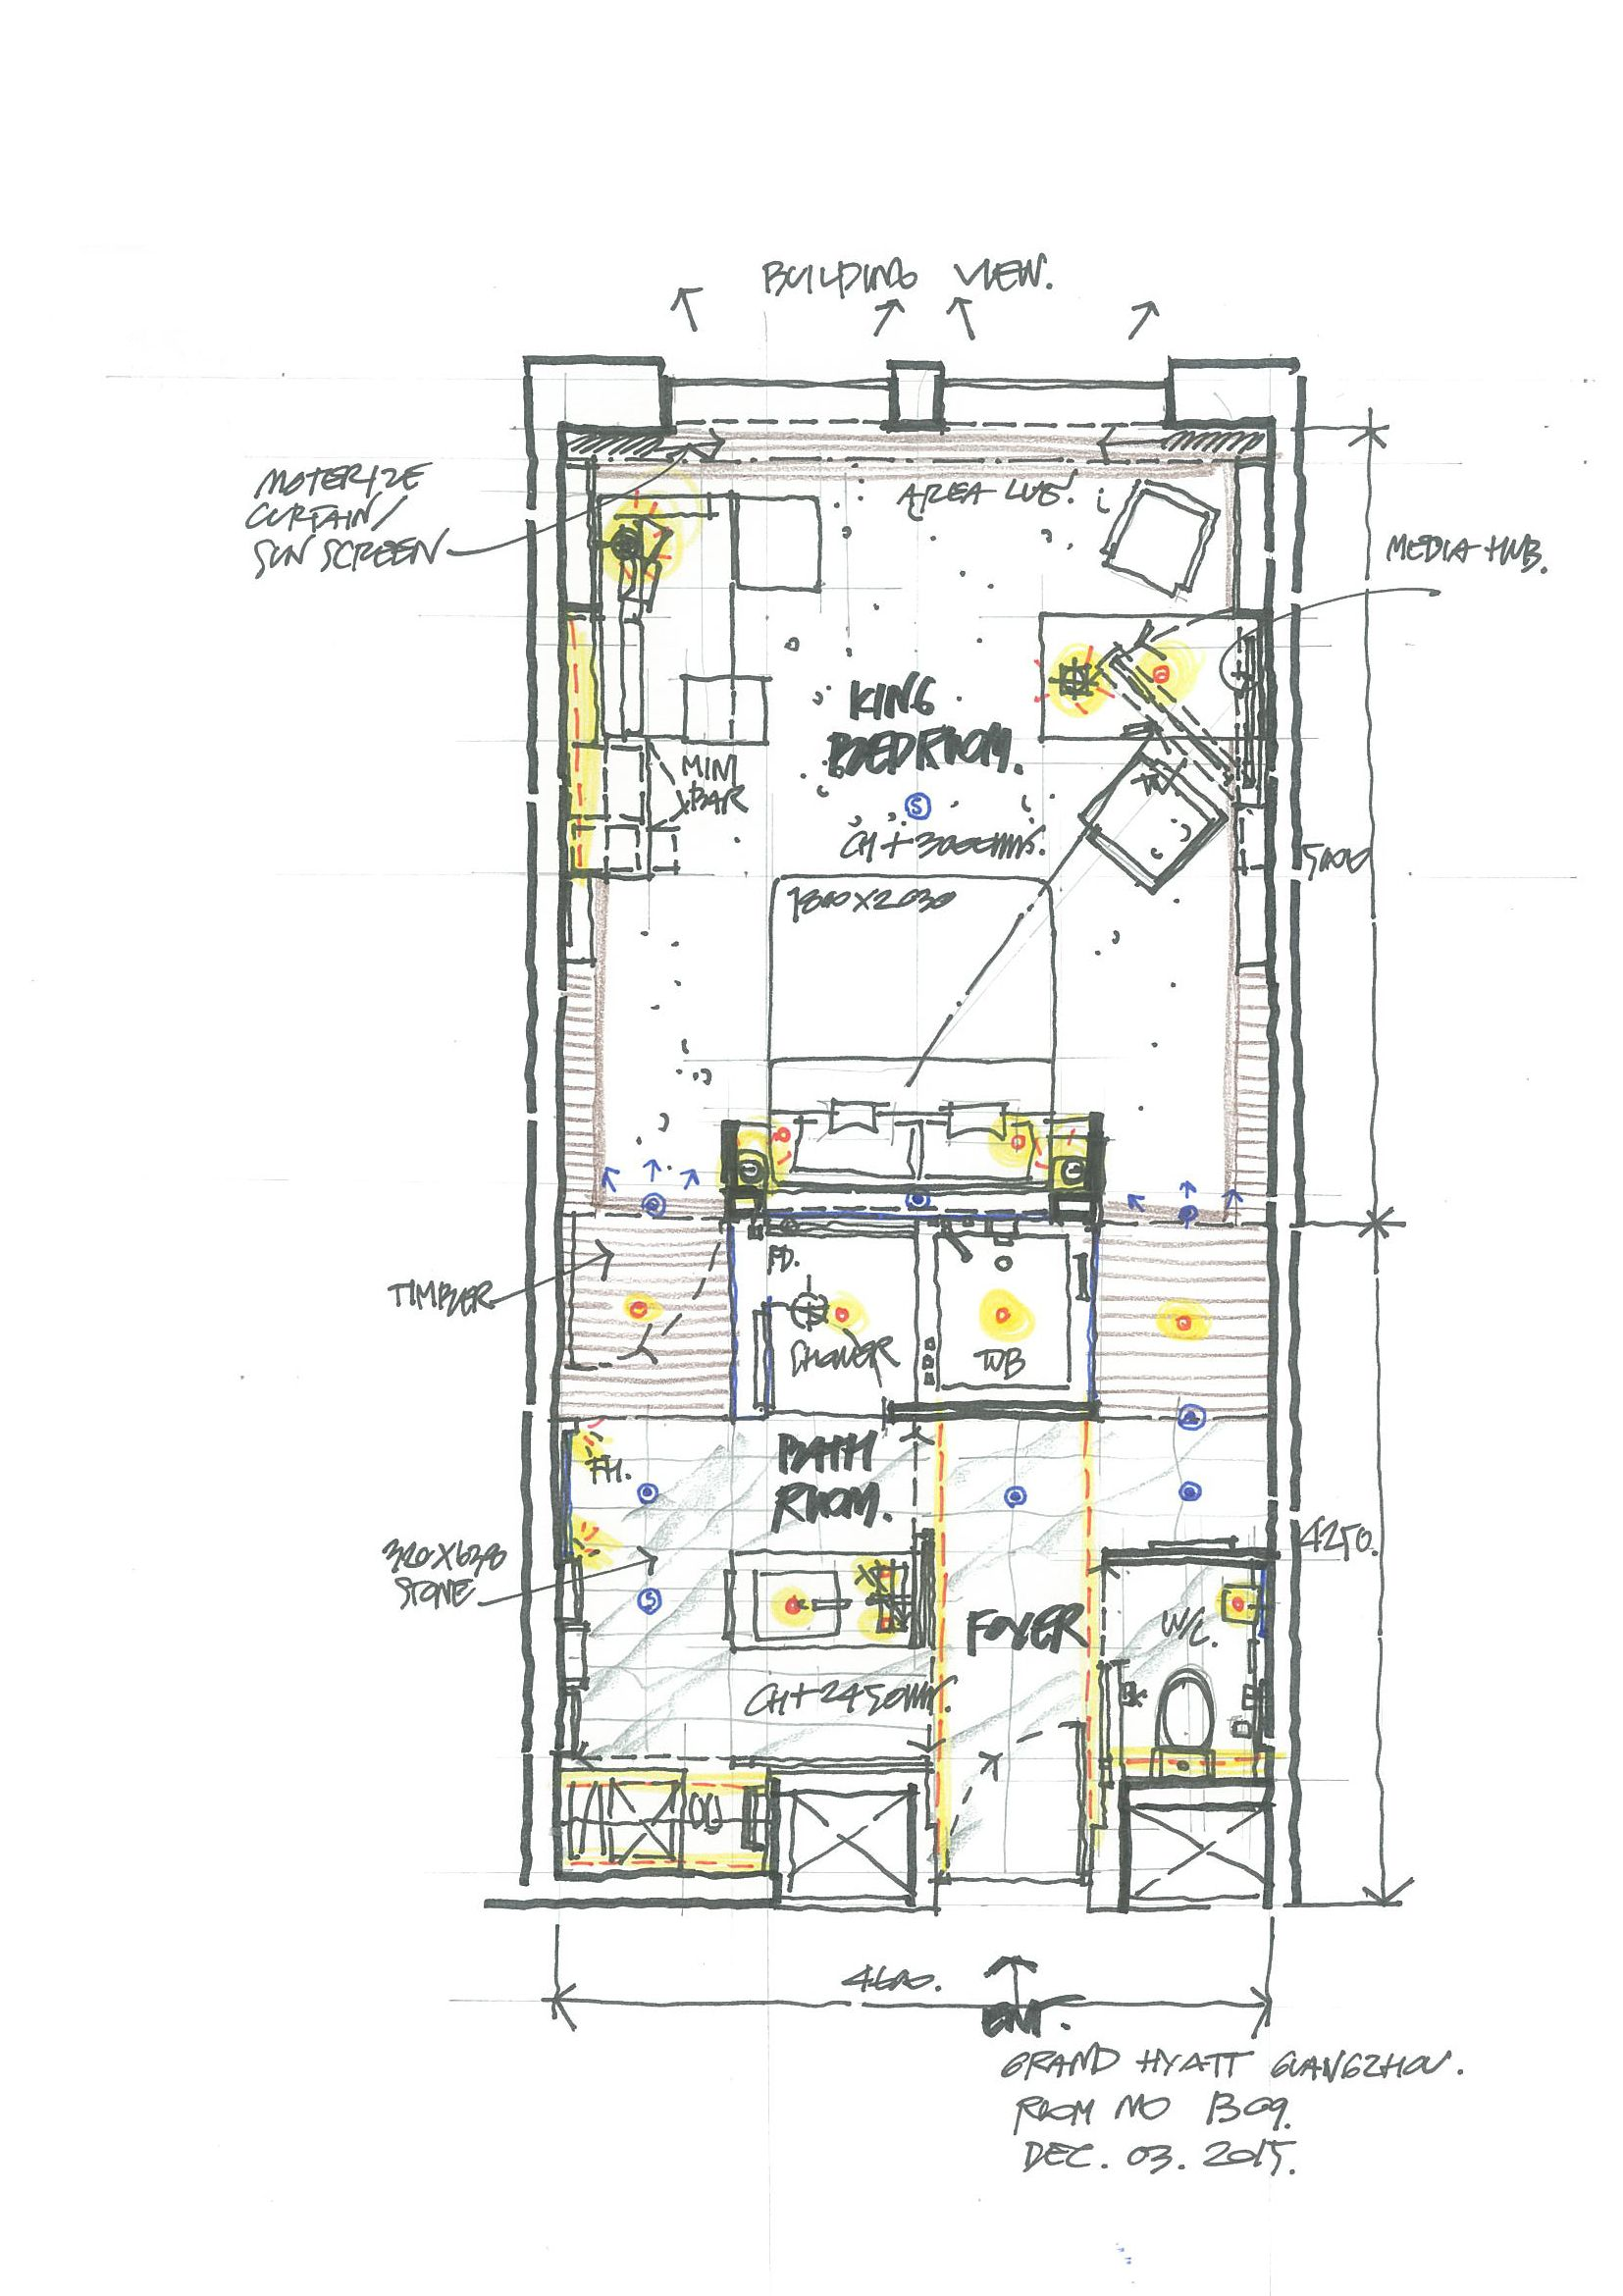 Sketch Plan Floor Plan Design Hotel Room Plan Hotel Floor Plan